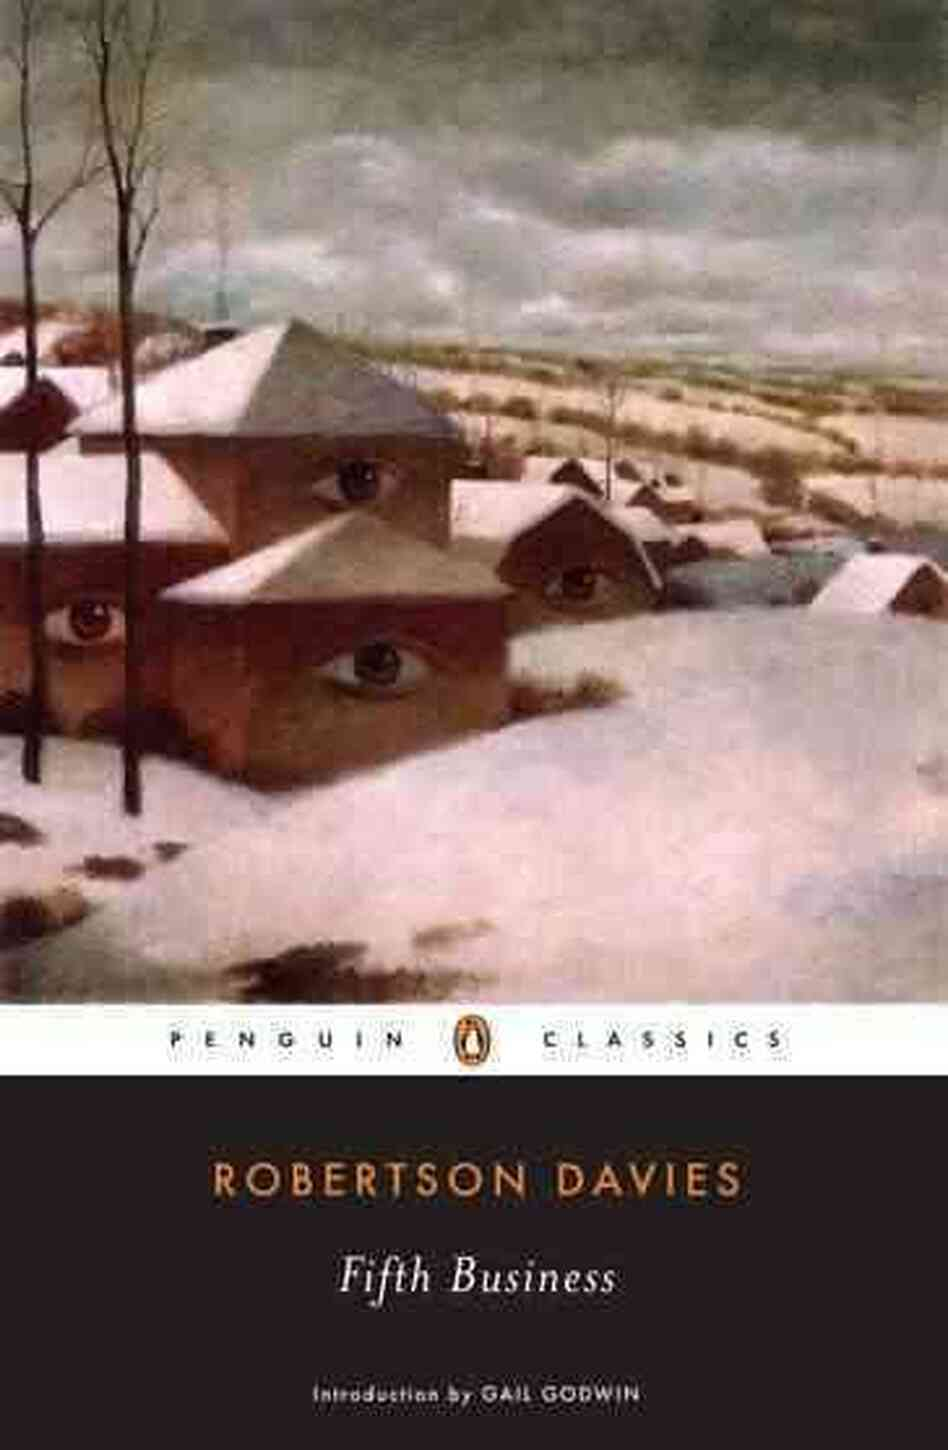 an analysis of characters in the novel fifth business by robertson davies Robertson davies is known primarily as a novelist his most highly acclaimed novels form the deptford trilogy: fifth business (1970), the manticore (1972), and world of wonders (1975) these three.